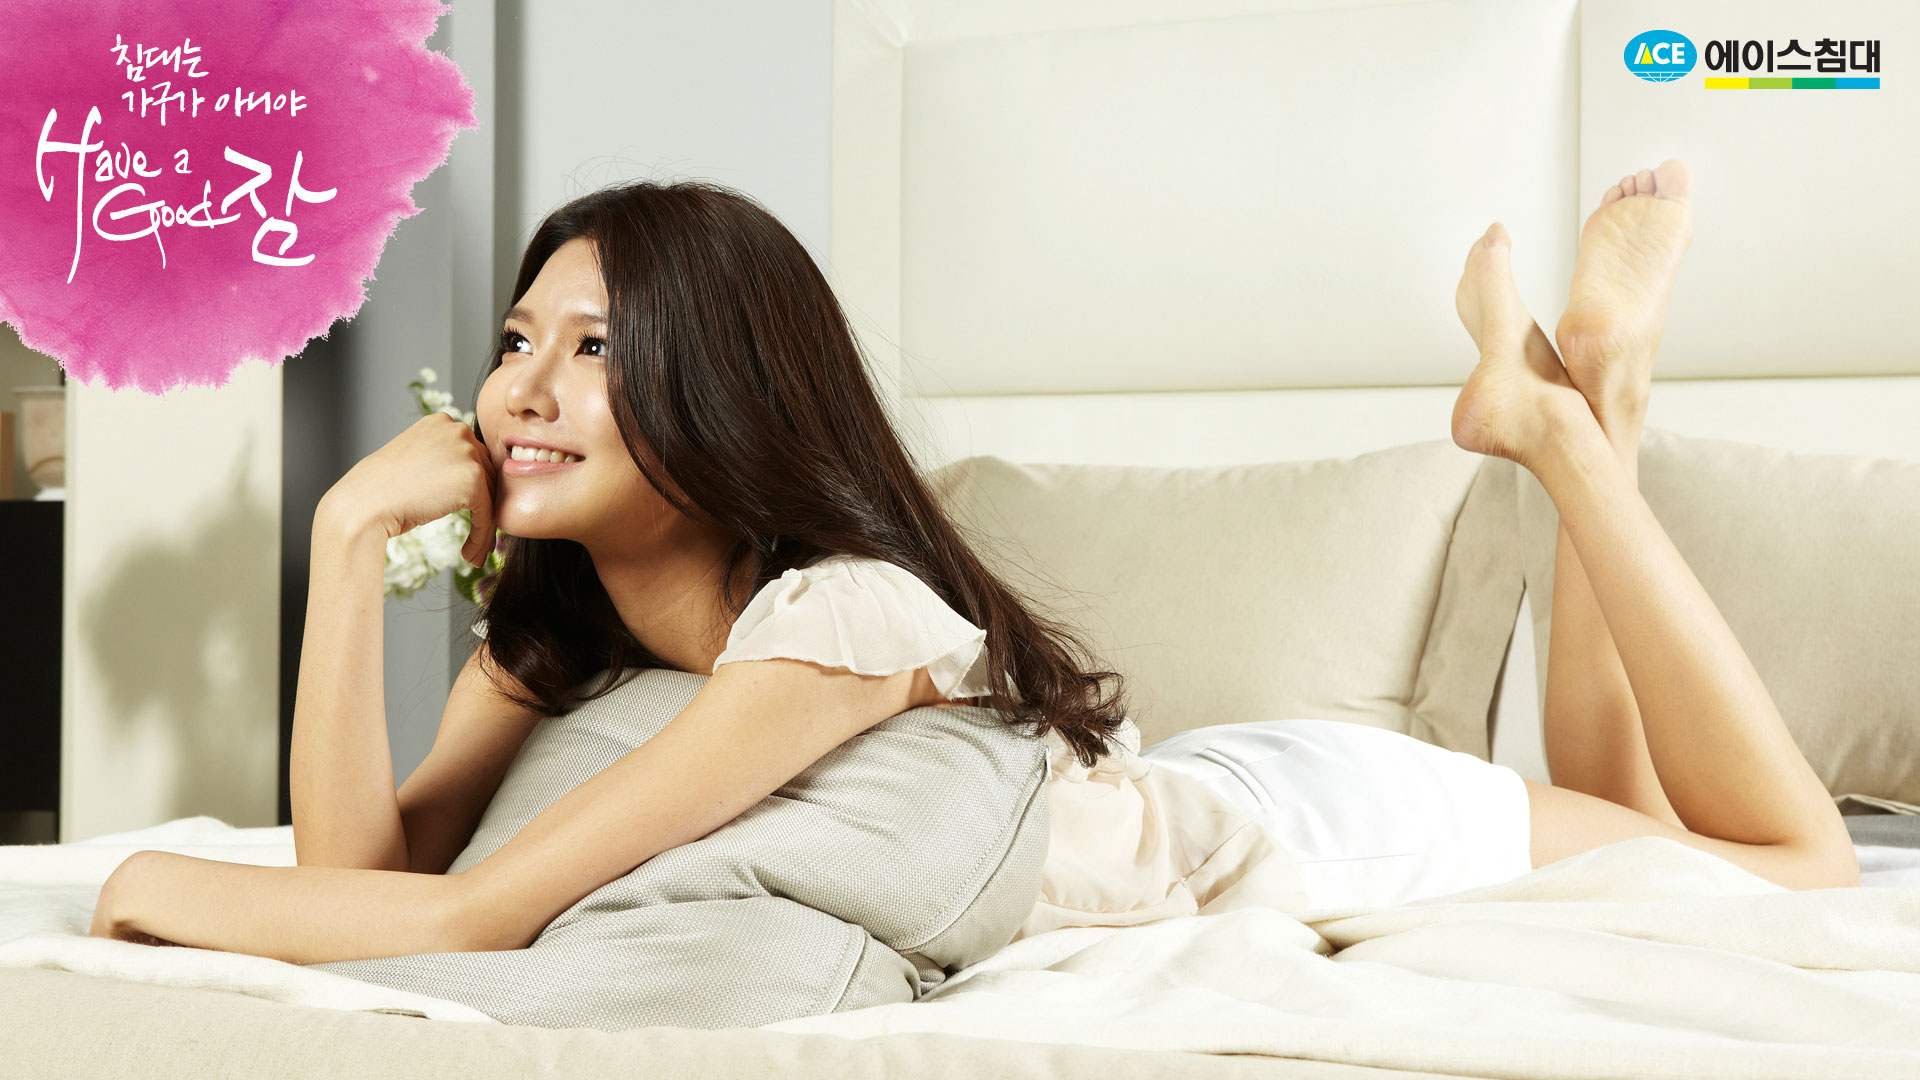 girls generation ace bed wallpapers